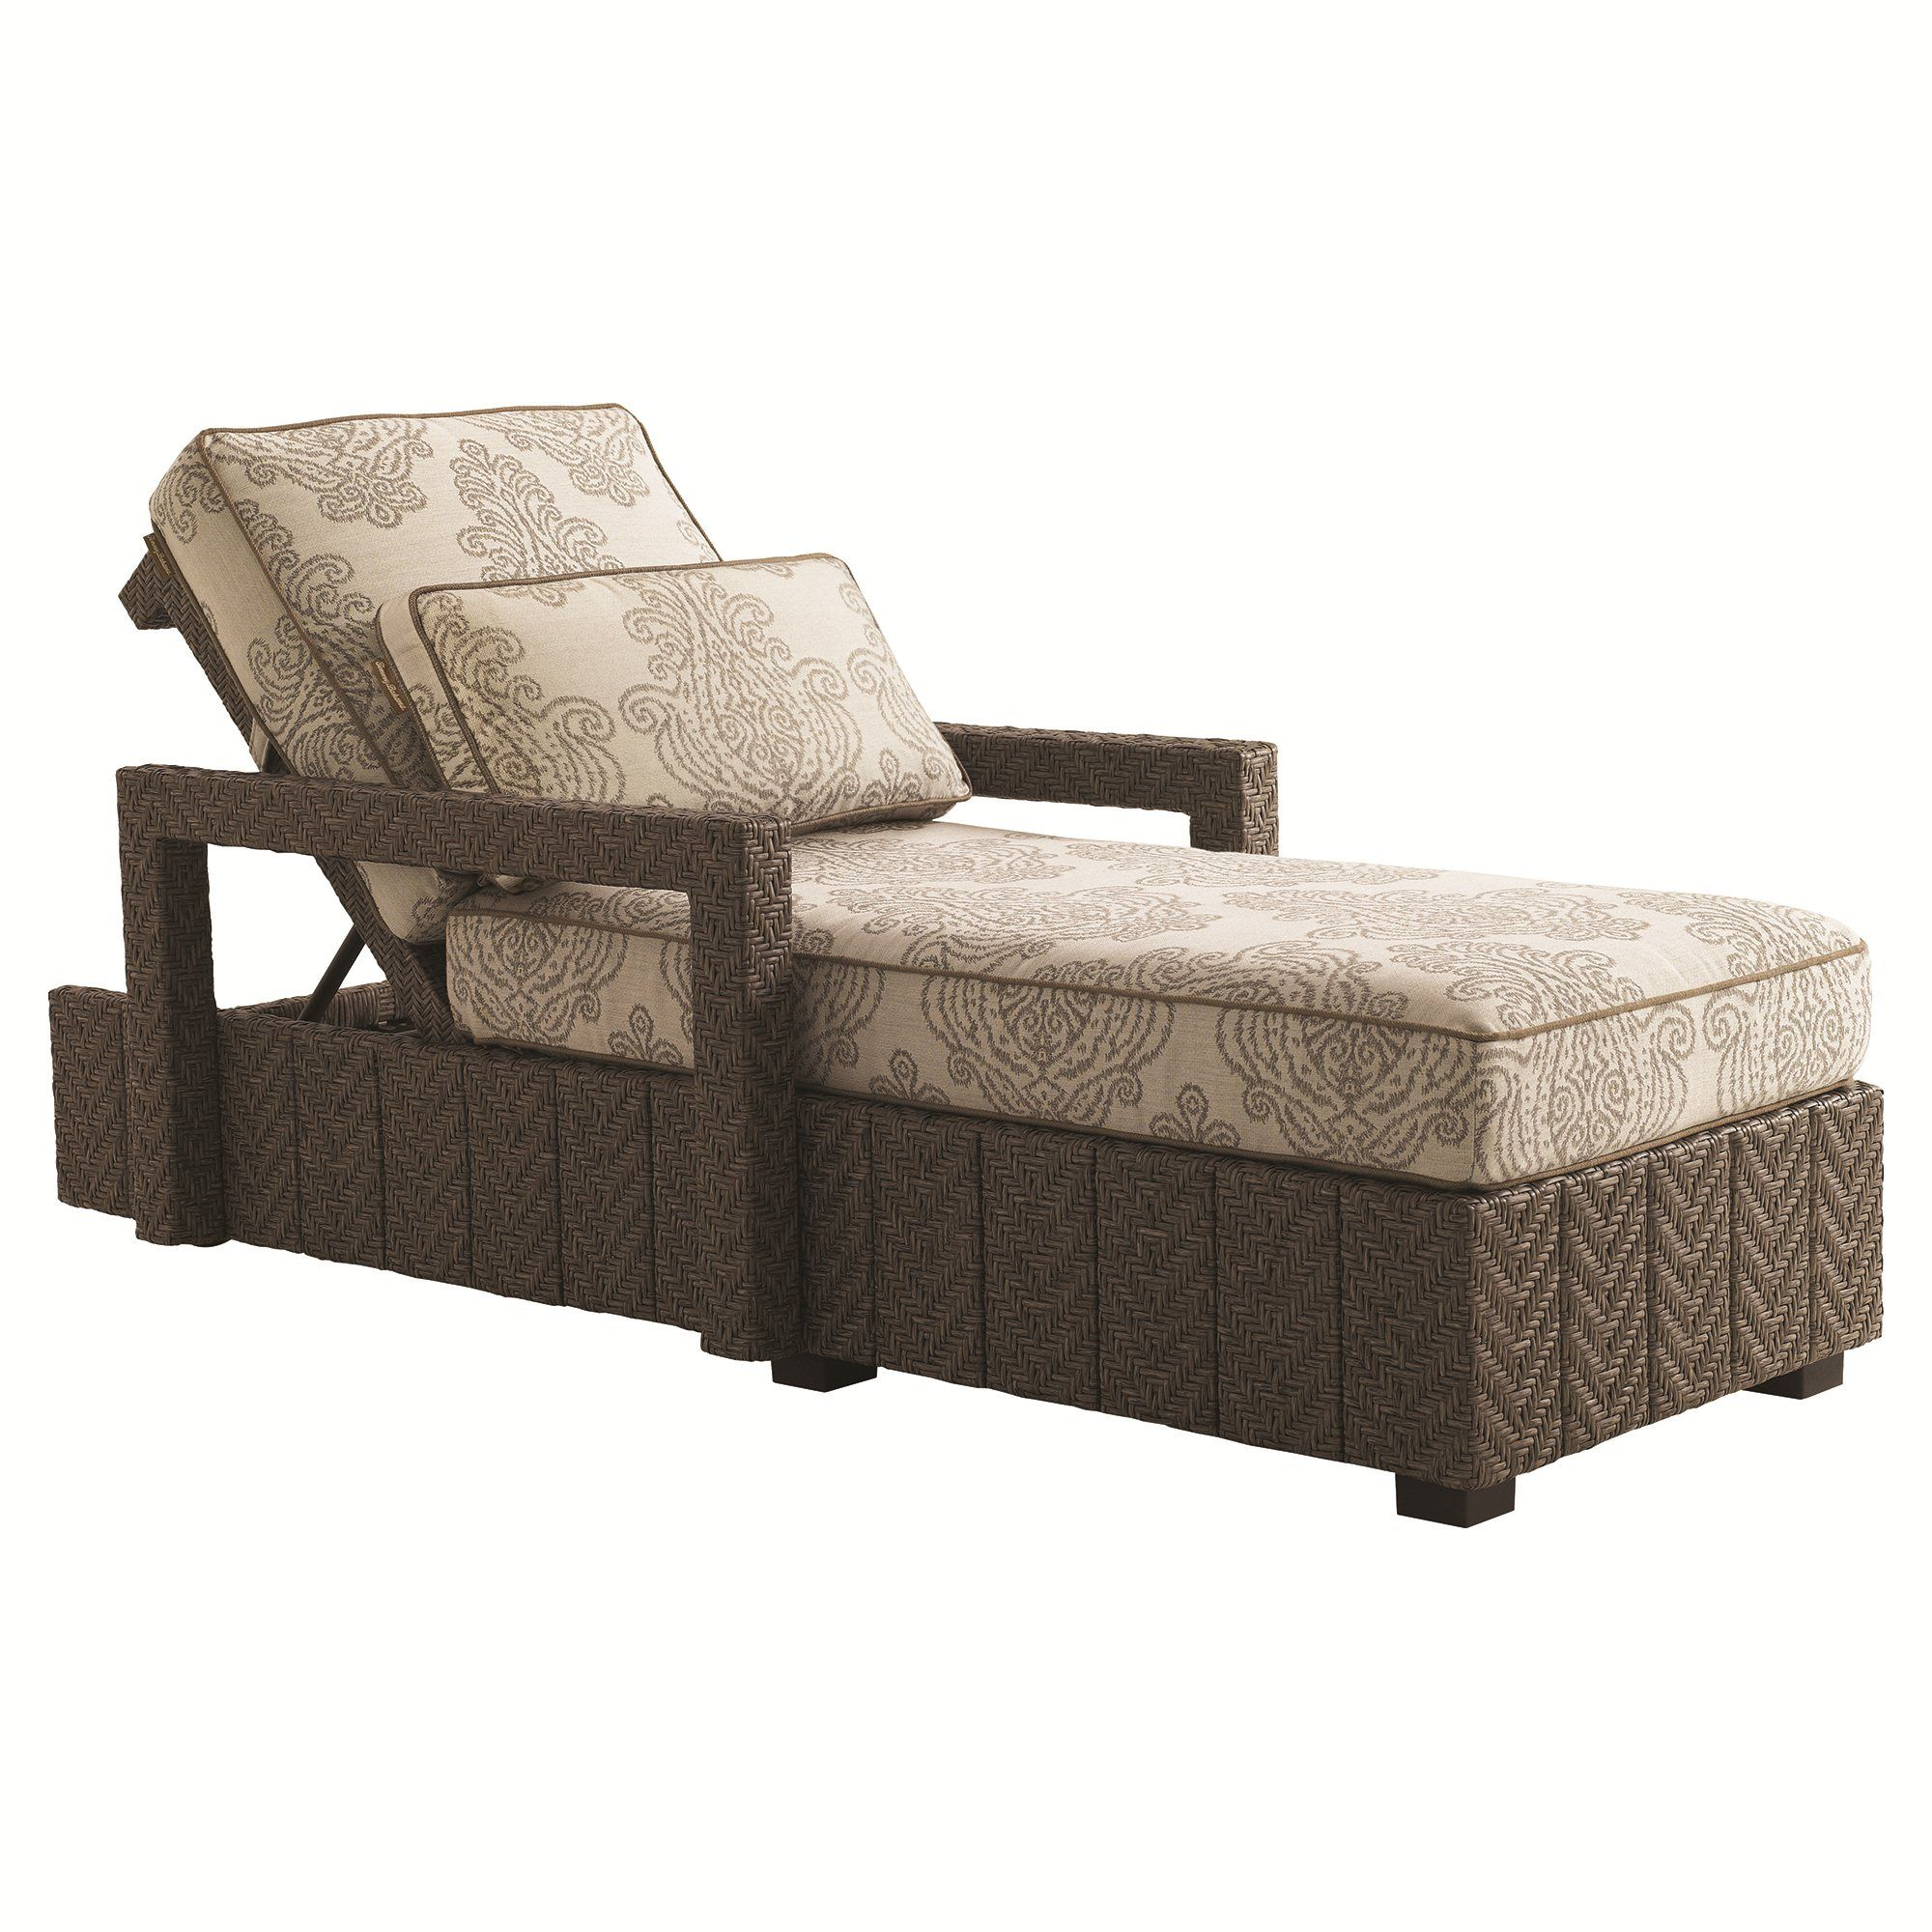 lexington blue olive chaise lounge 3230 75 tommy bahama outdoor